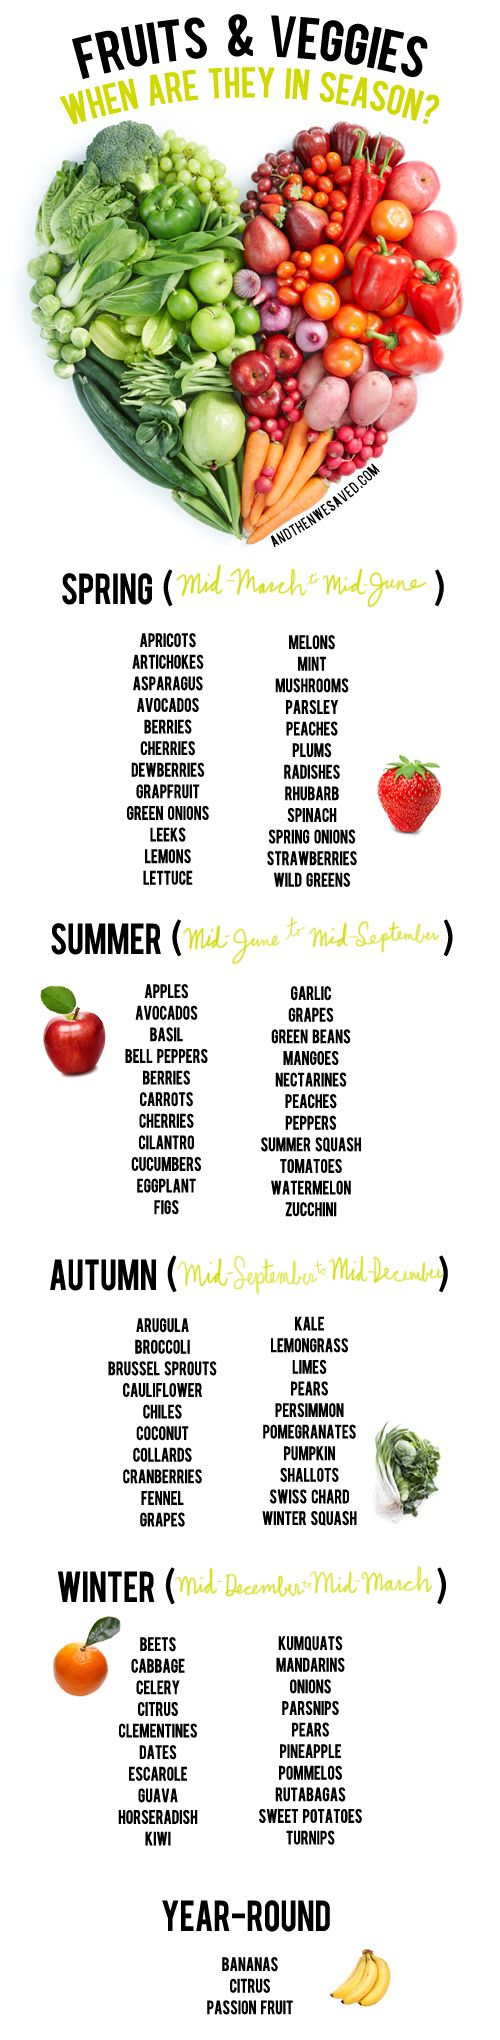 Fruits & Veggies. When are they in season?